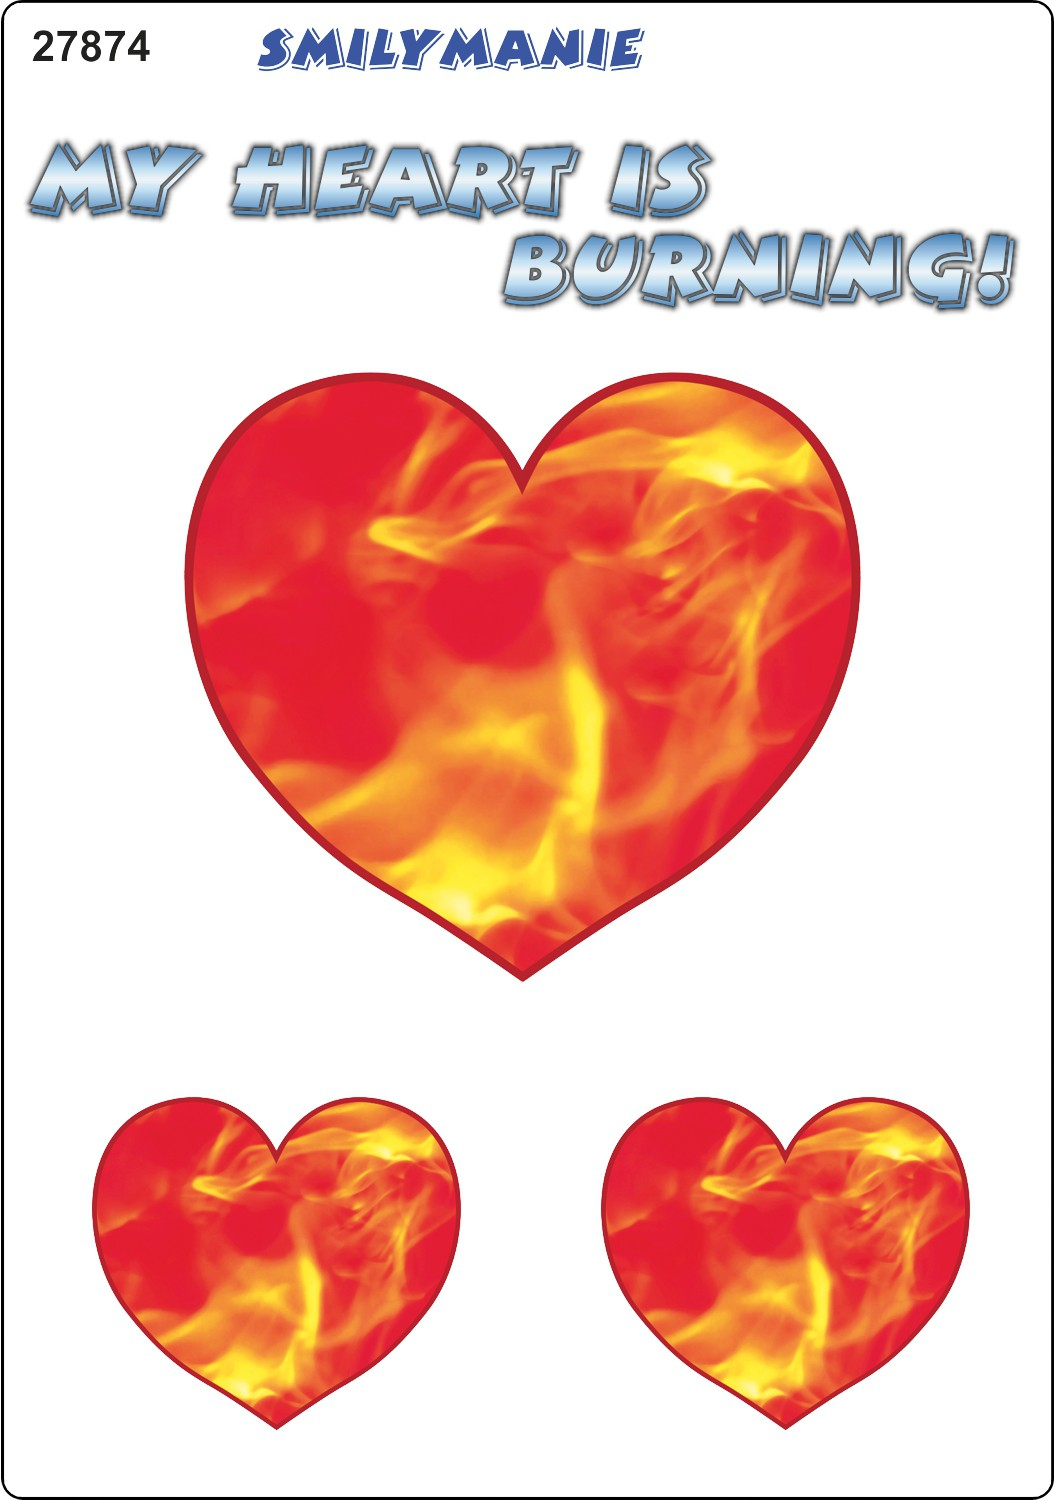 Sticker heart My heart is burning! set of 3 150 x 105 mm